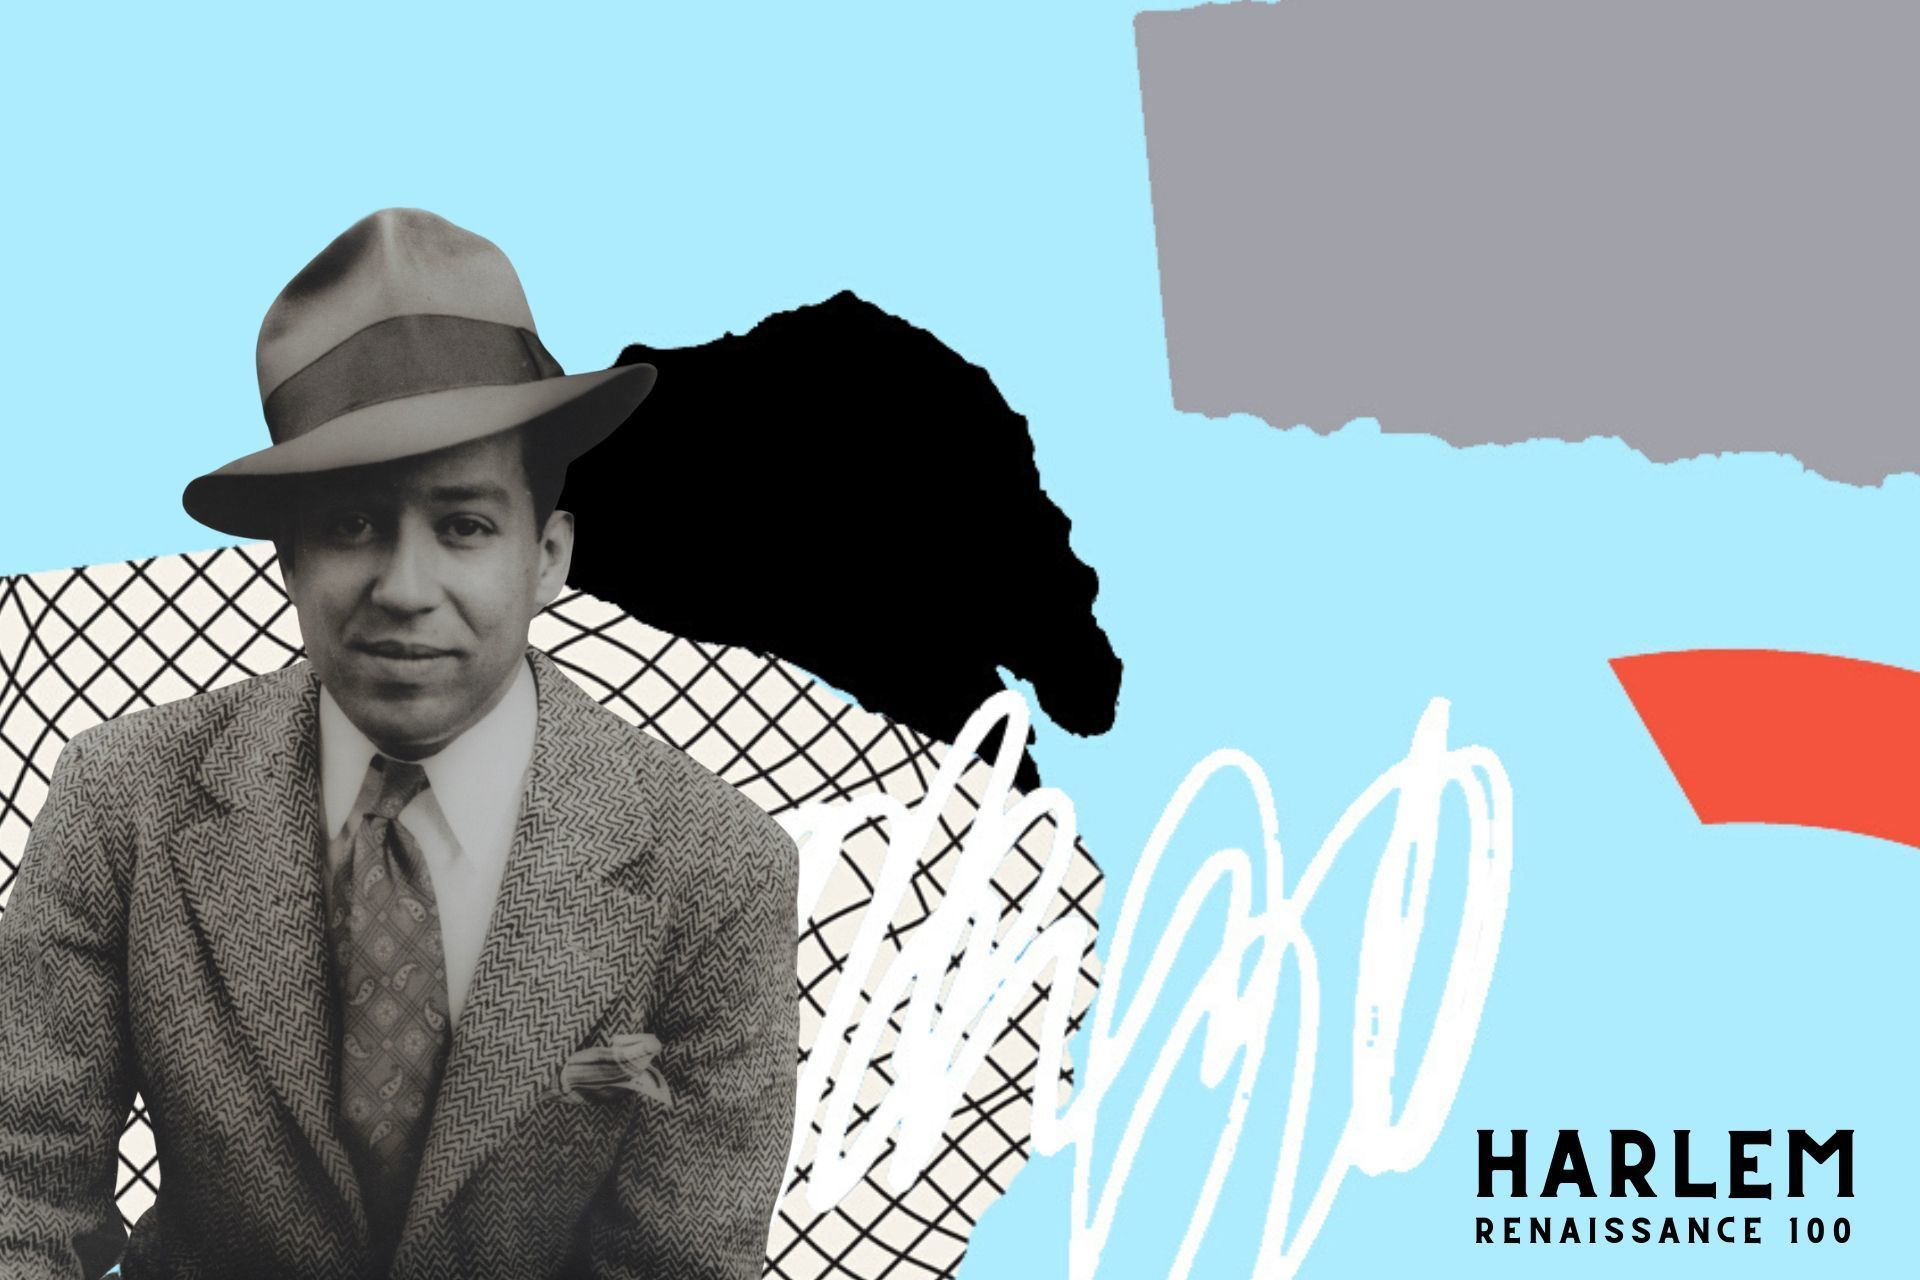 Hold fast to dreams: Community celebrates 100th anniversary of Harlem Renaissance